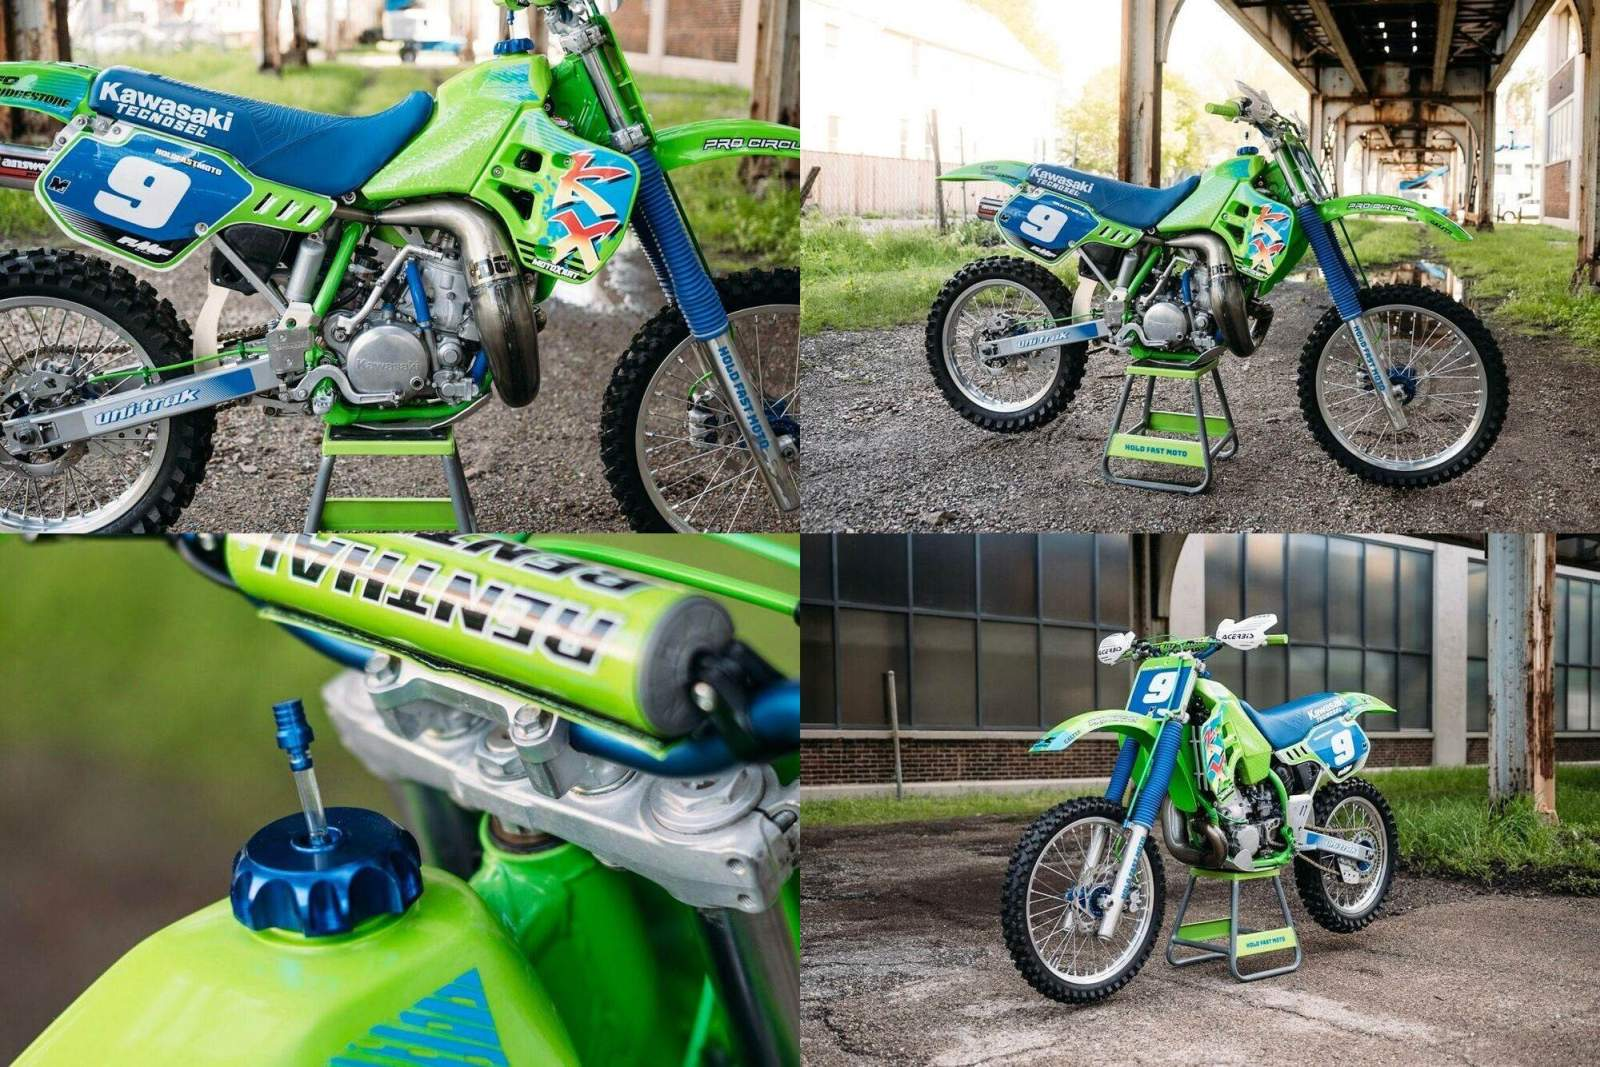 1989 Kawasaki KX Green used for sale near me